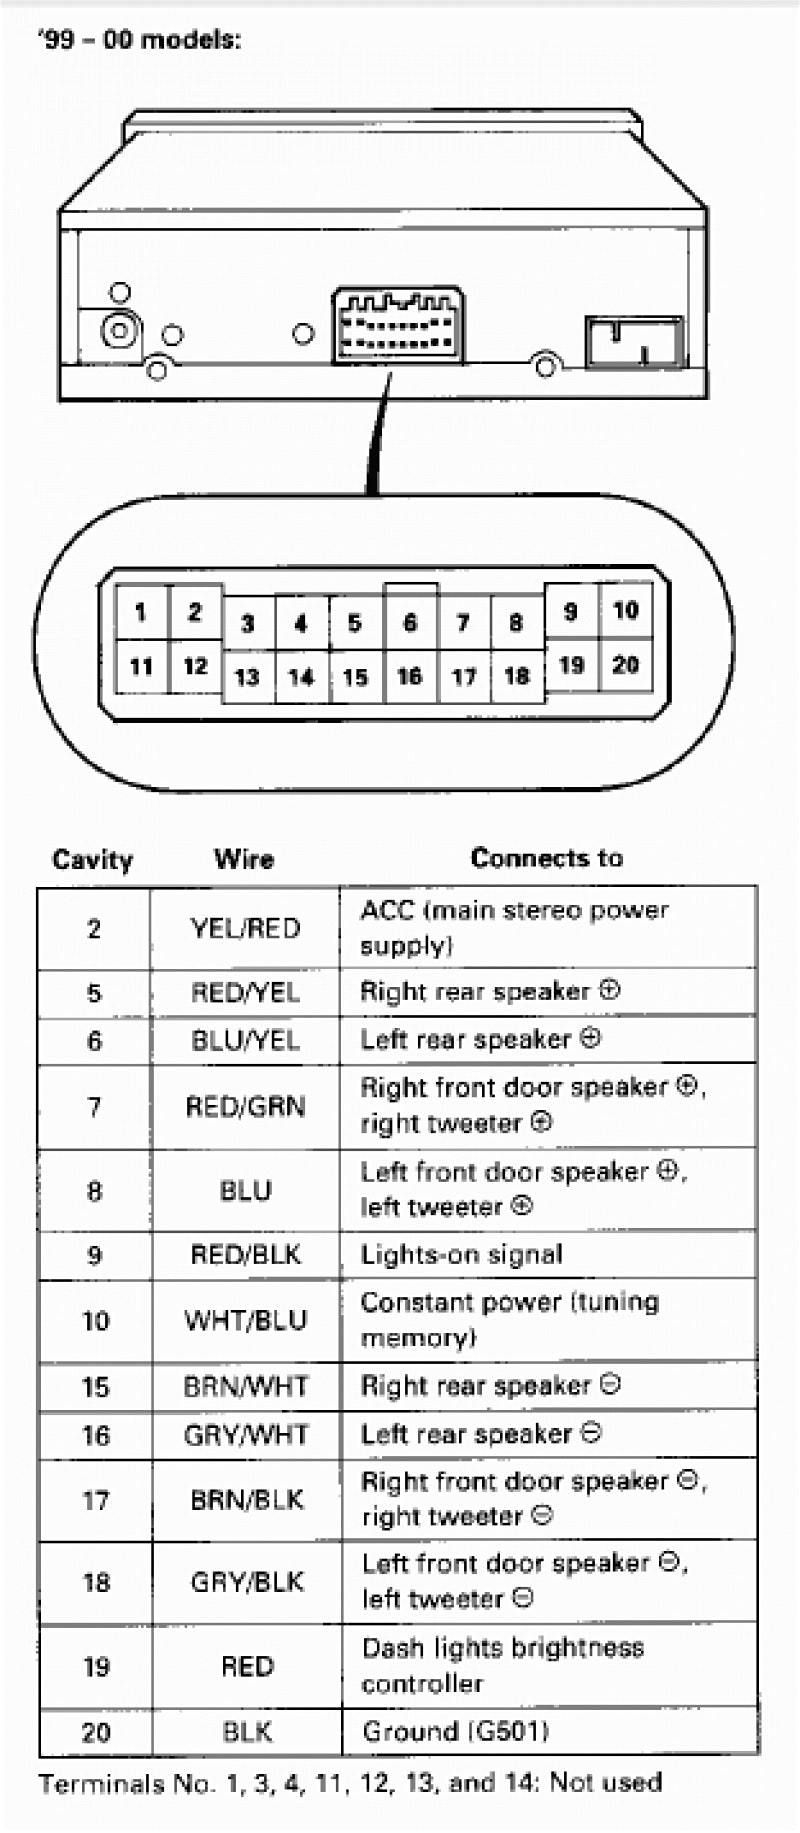 1995 civic radio wiring diagram 2017 honda civic radio wiring diagram | free wiring diagram